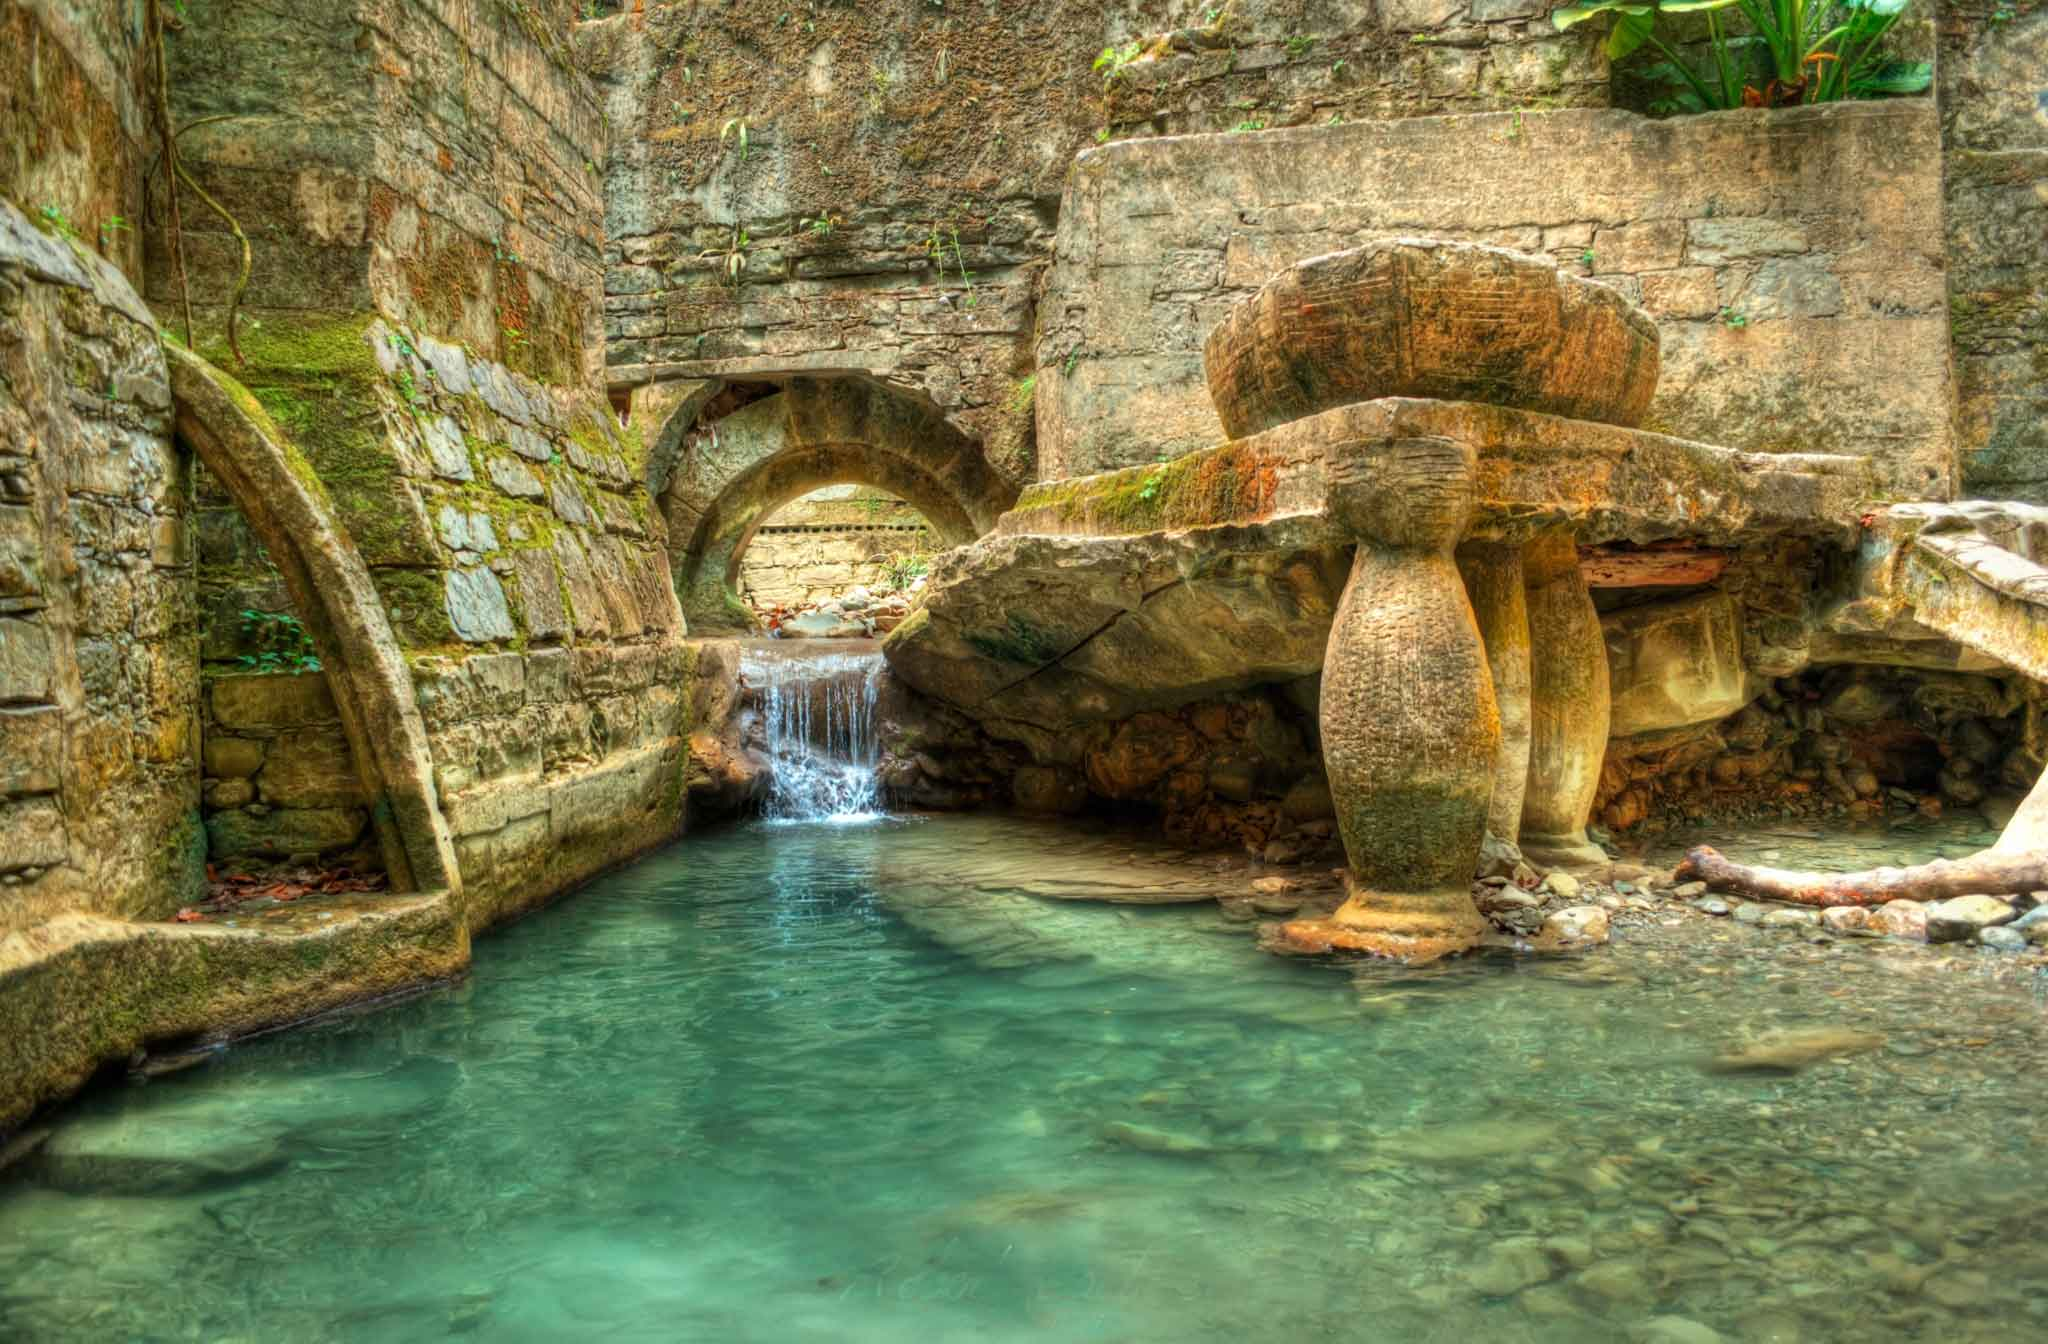 The-Most-Beautiful-Gardens-In-The-World-Las-Pozas-(Las-Pozas),-Mexico